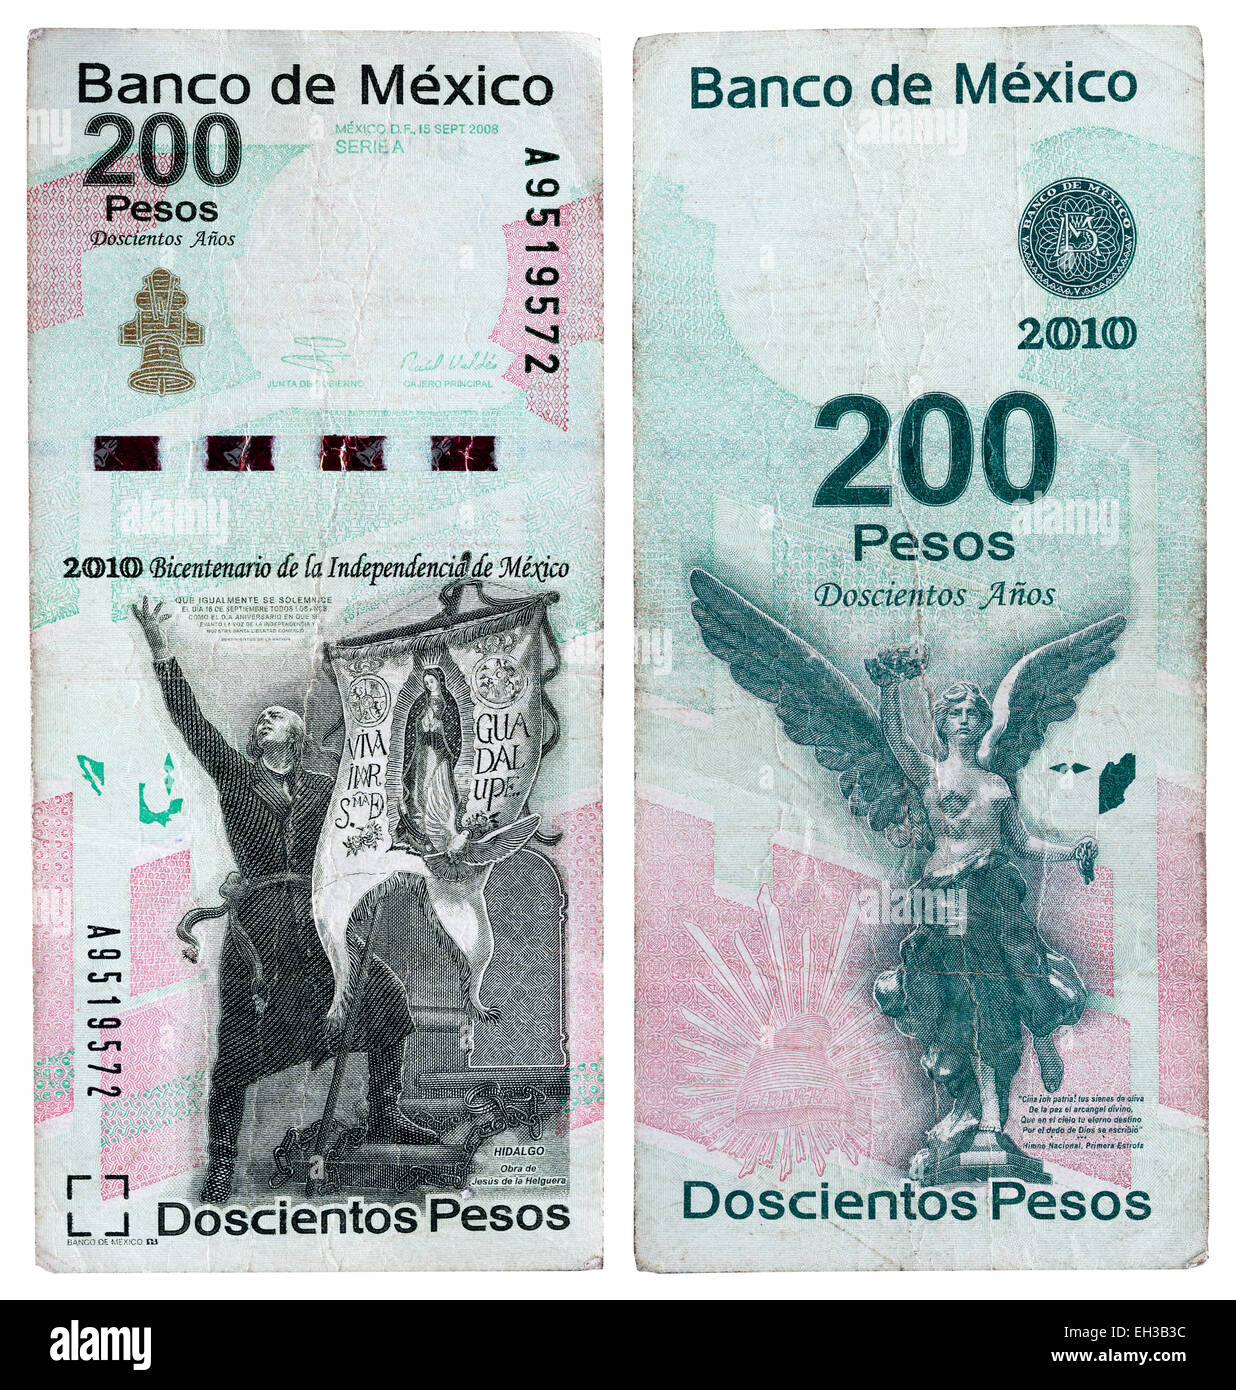 200 pesos banknote, Miguel Hidalgo and Statue of Angel of Independence, Mexico, 2010 - Stock Image